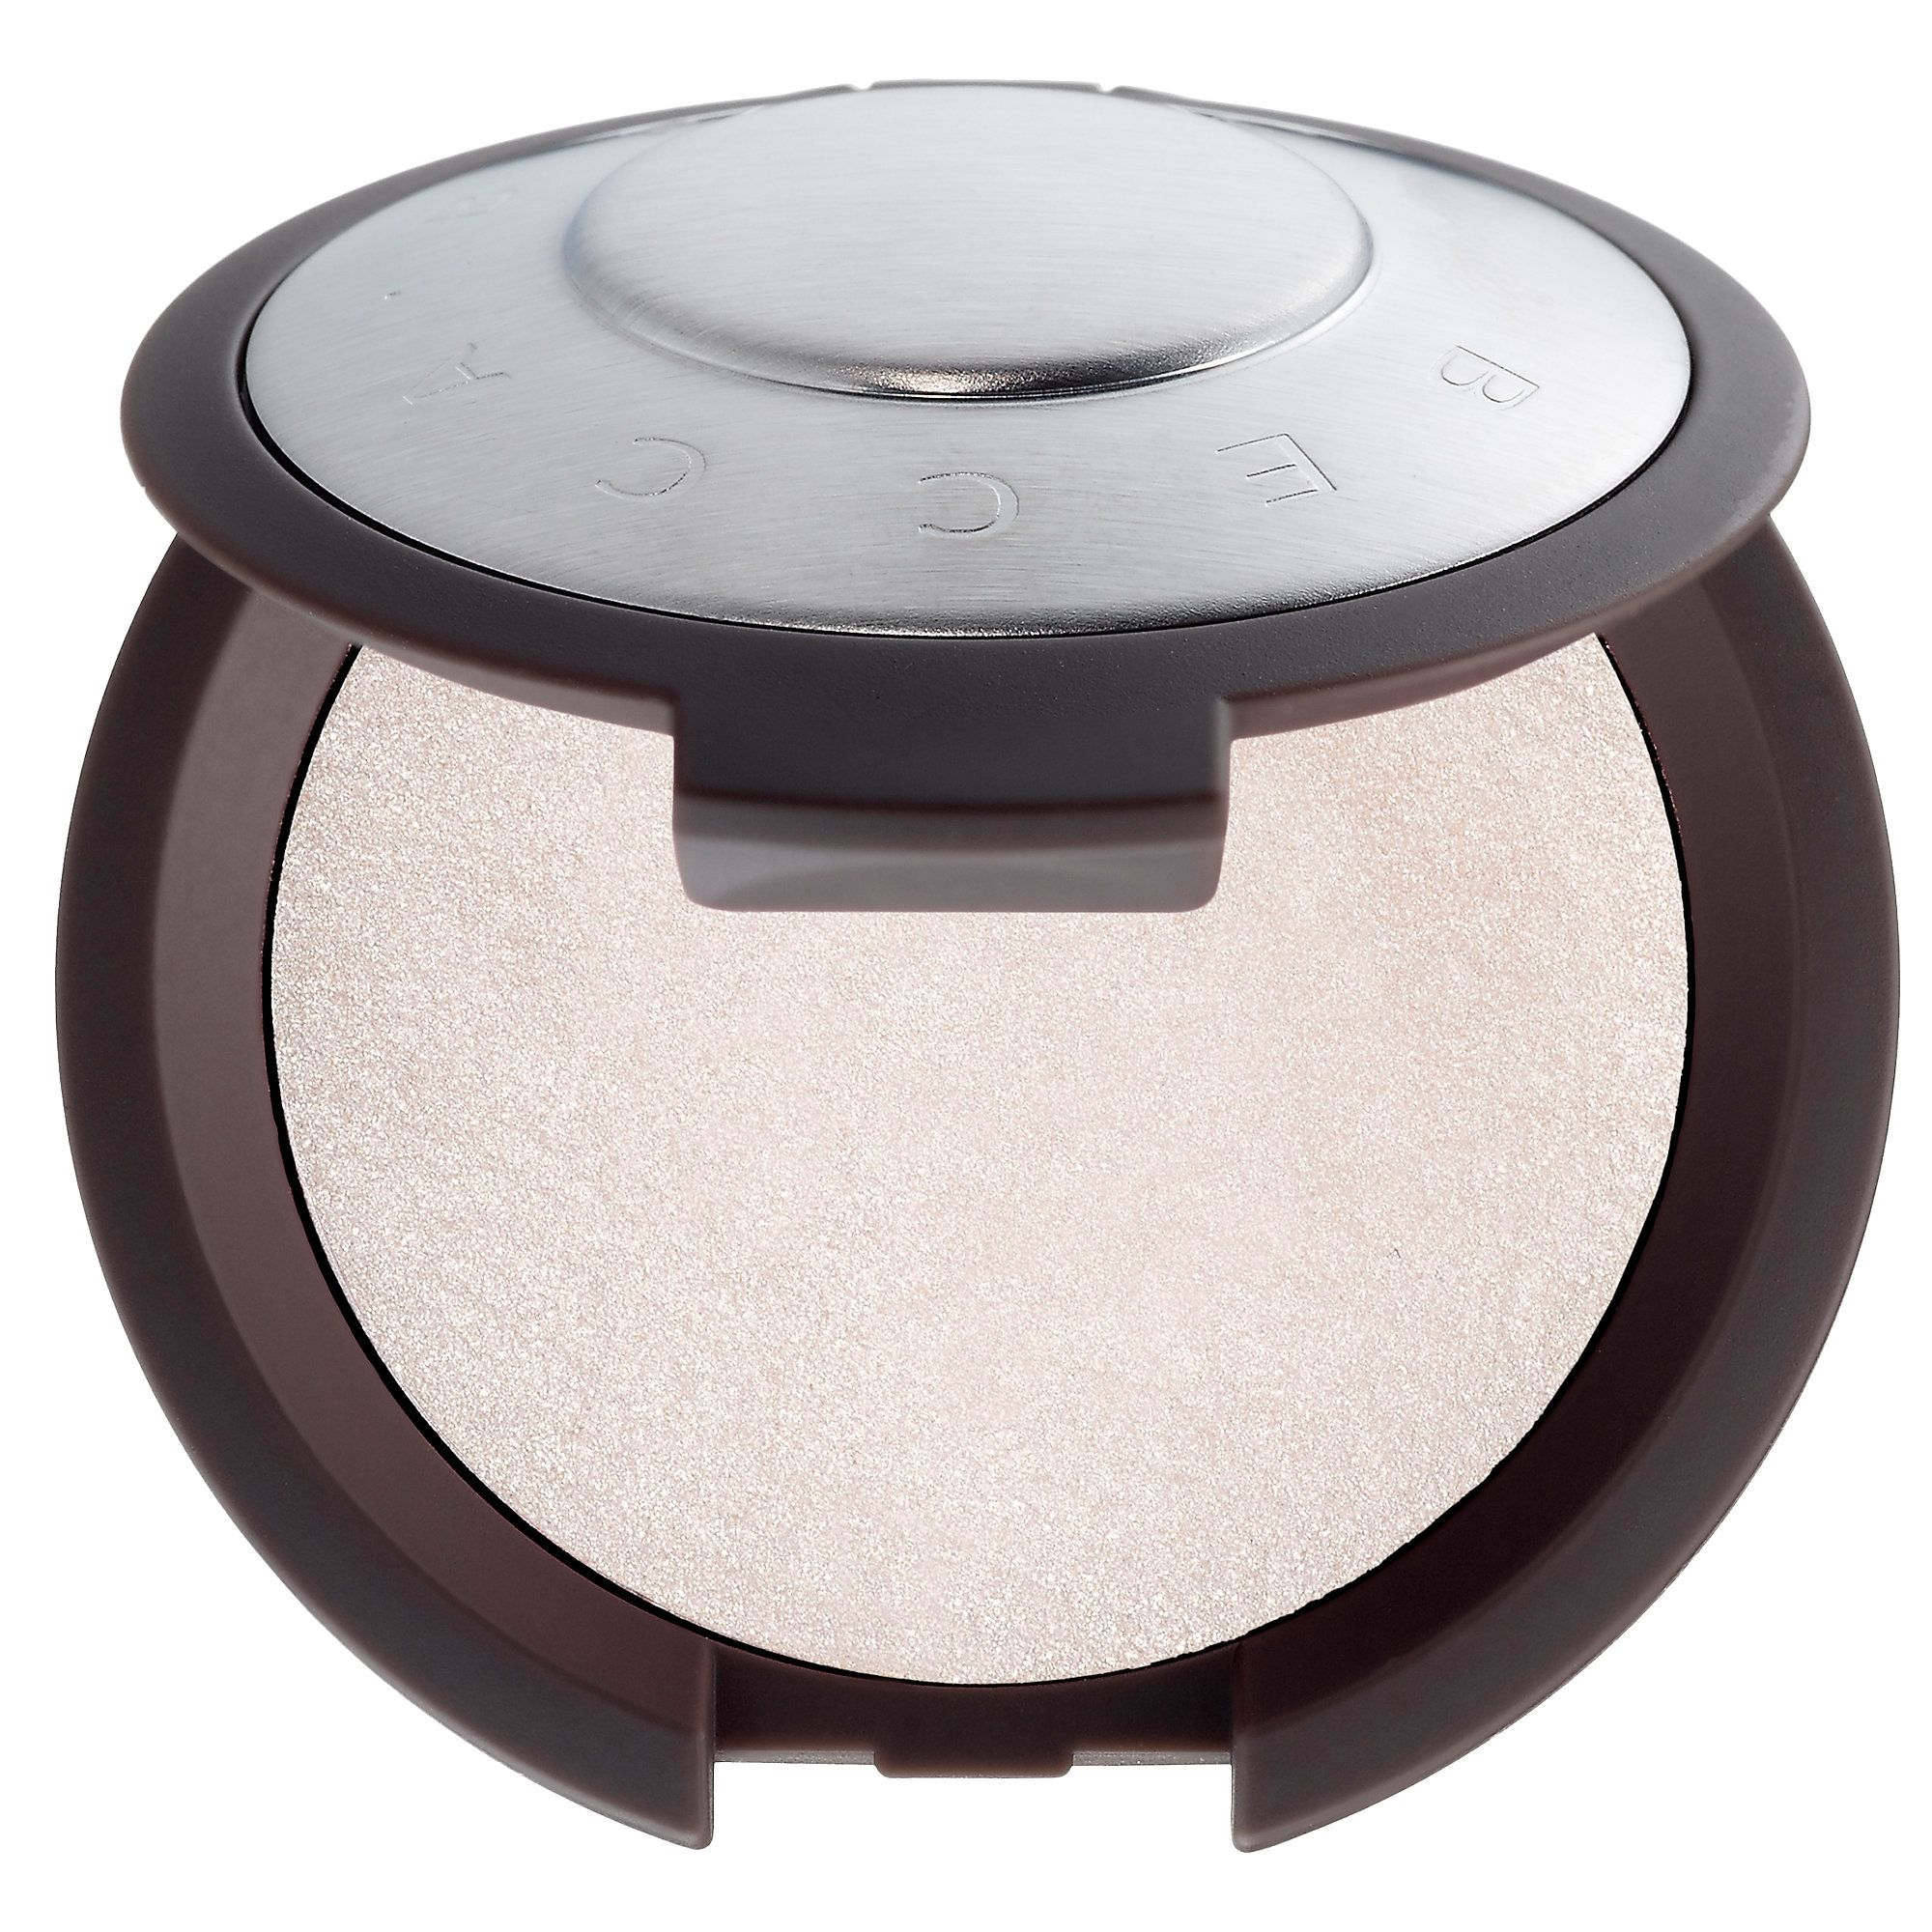 Shop Becca's Shimmering Skin Perfector Pressed at Sephora. It absorbs, reflects, and refracts light to create a unique glow.#highlighter